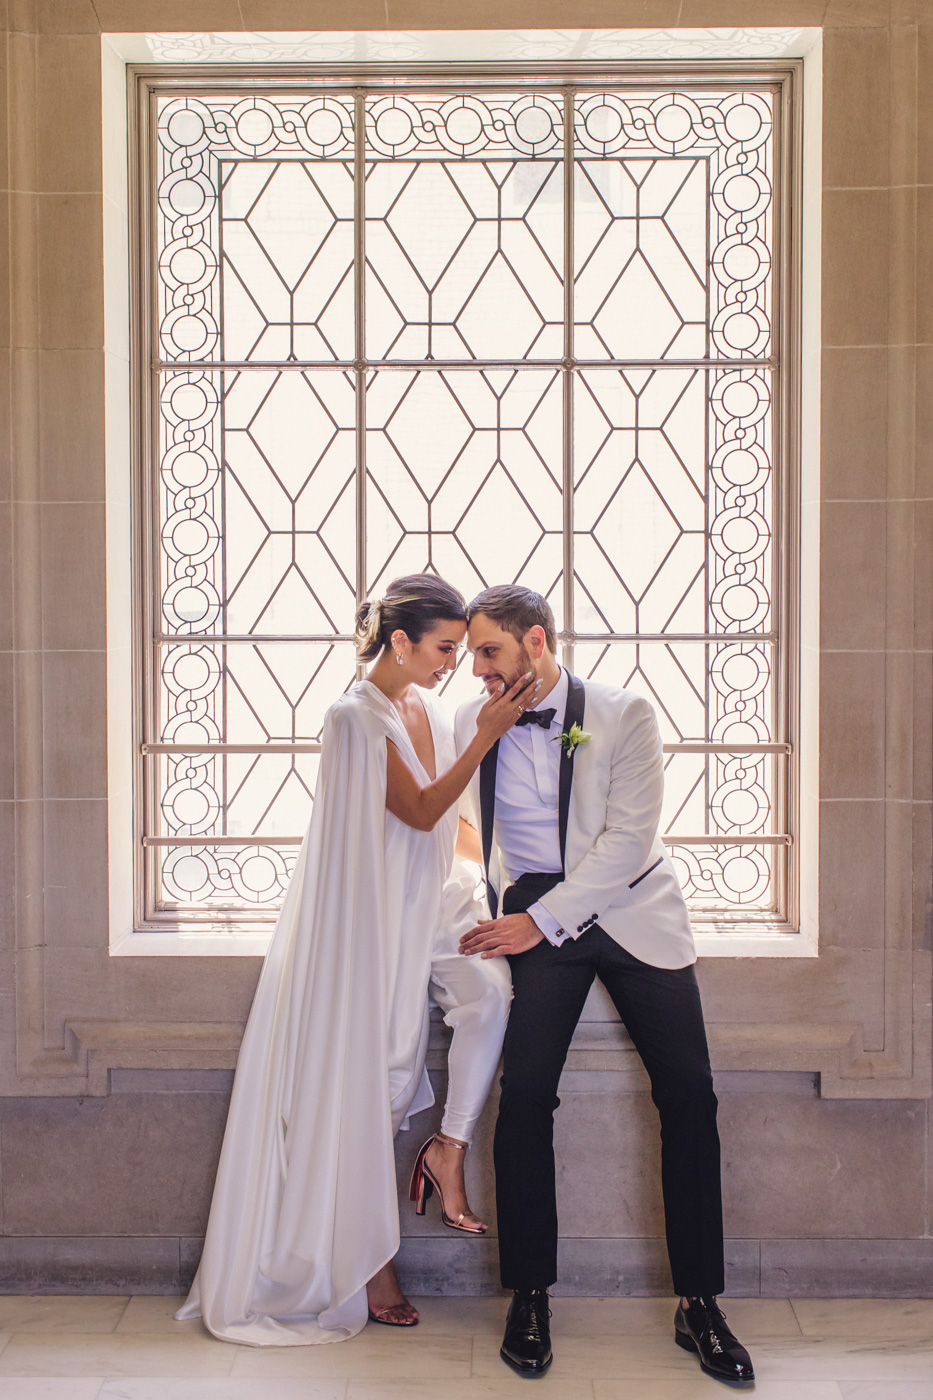 aaron-kes-photography-sf-city-hall-wedding-window-portrait